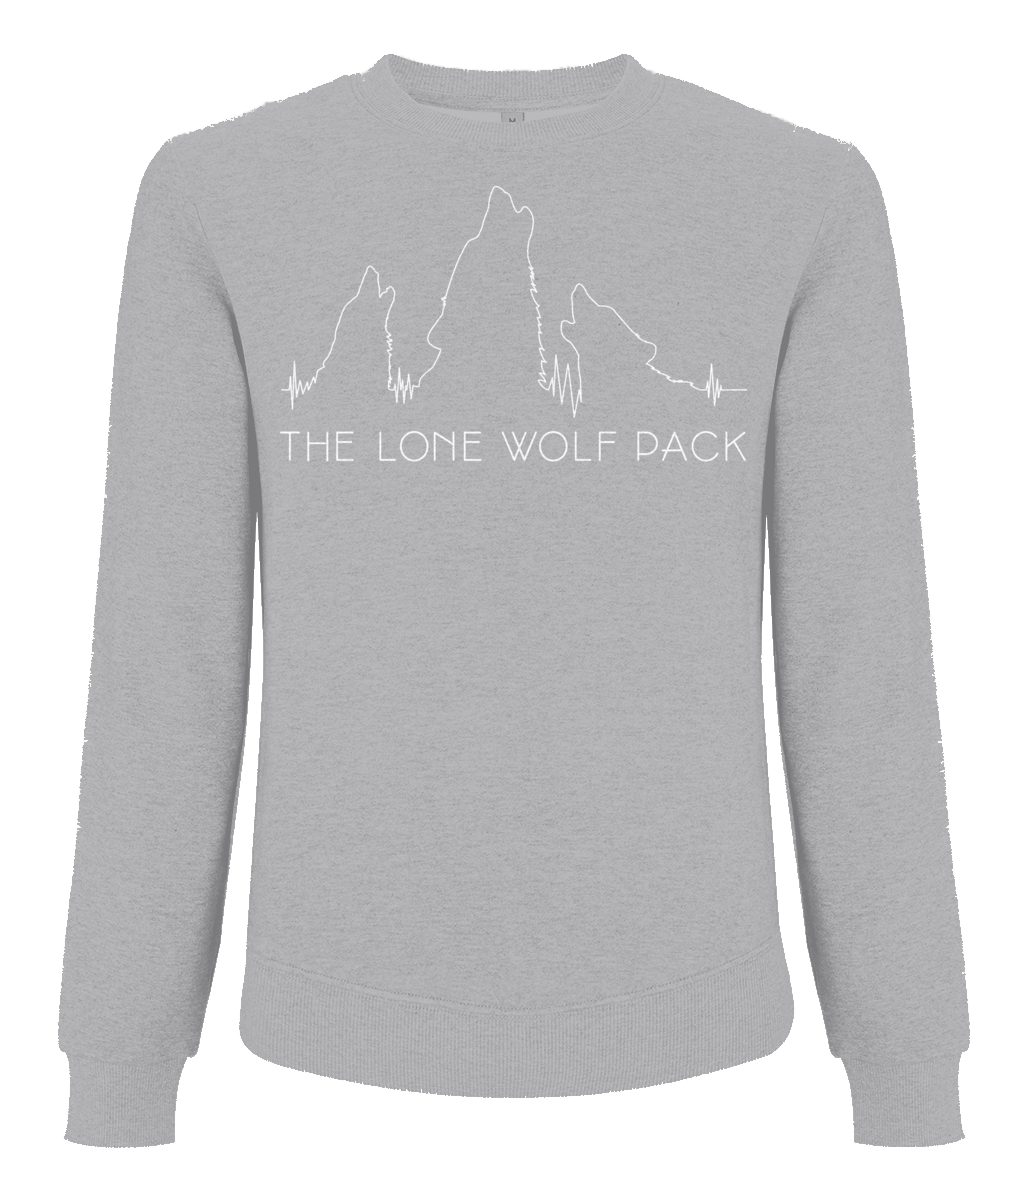 The Lone Wolf Pack Unisex Grey Sweatshirt